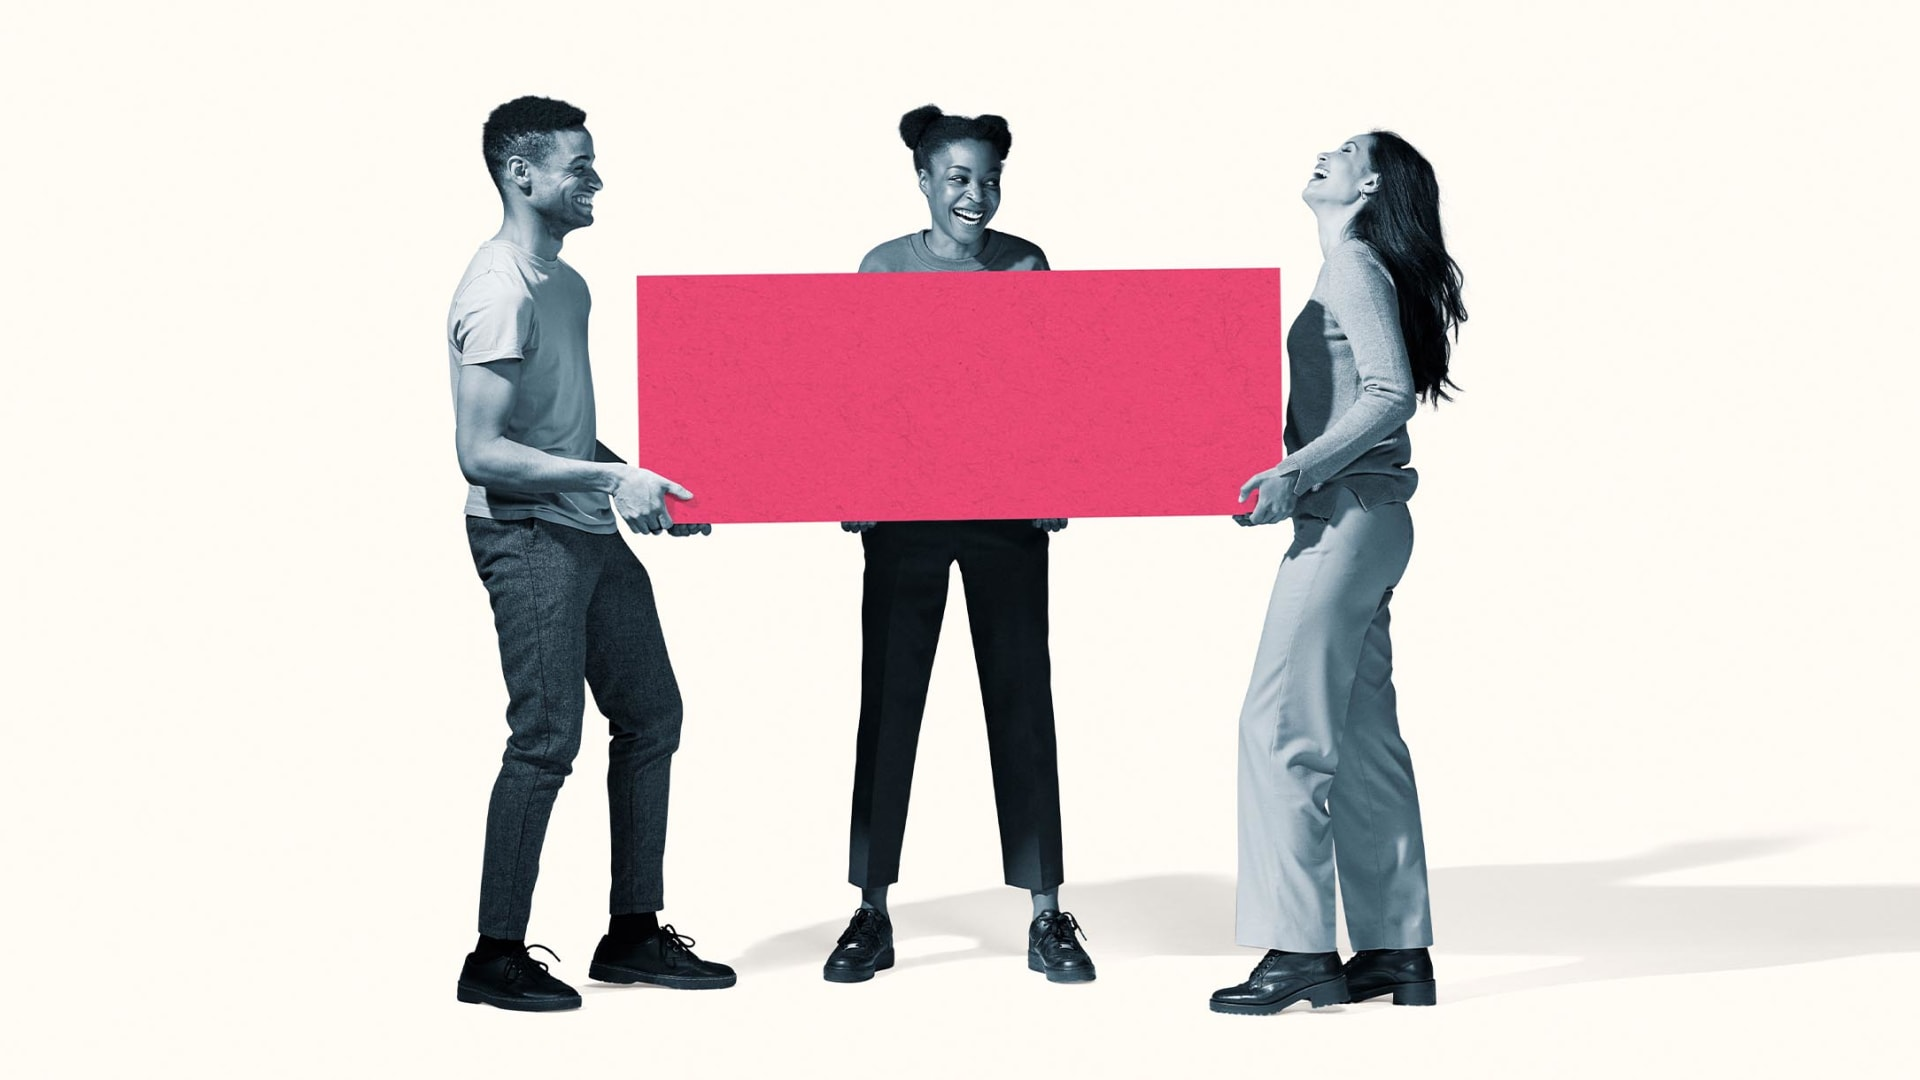 What Your Company Needs to Do on Diversity, Equity, and Inclusion